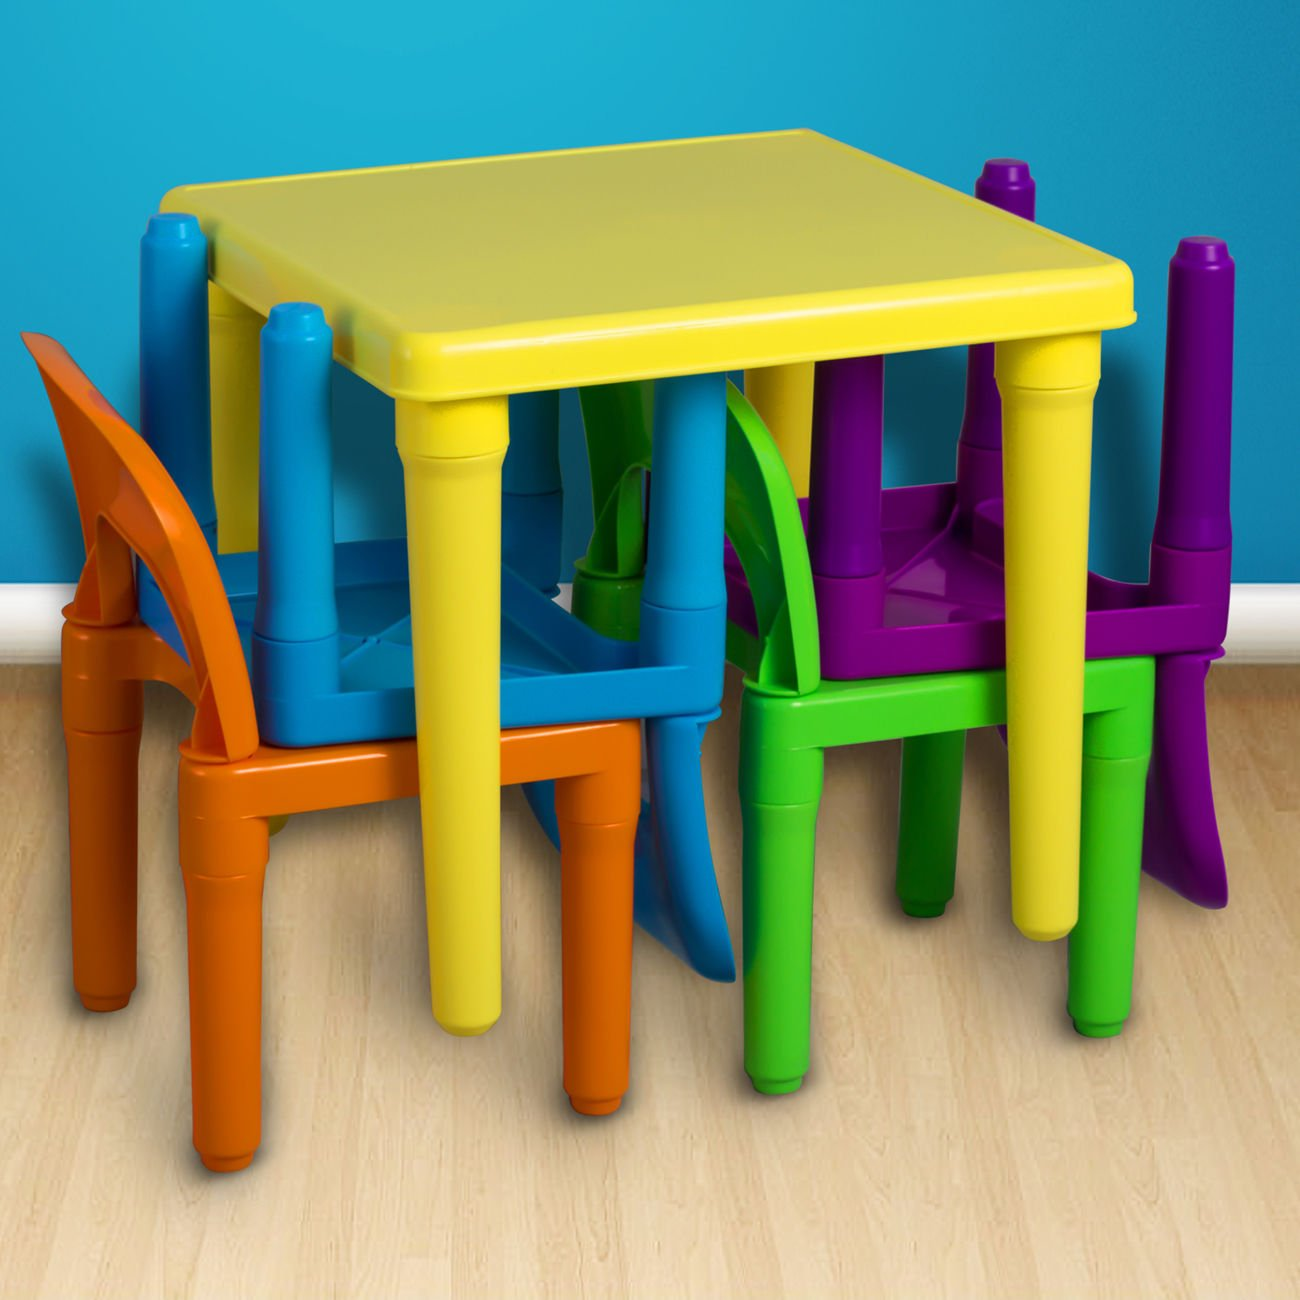 Kids Table and Chairs Play Set Toddler Child Toy : by WW shop